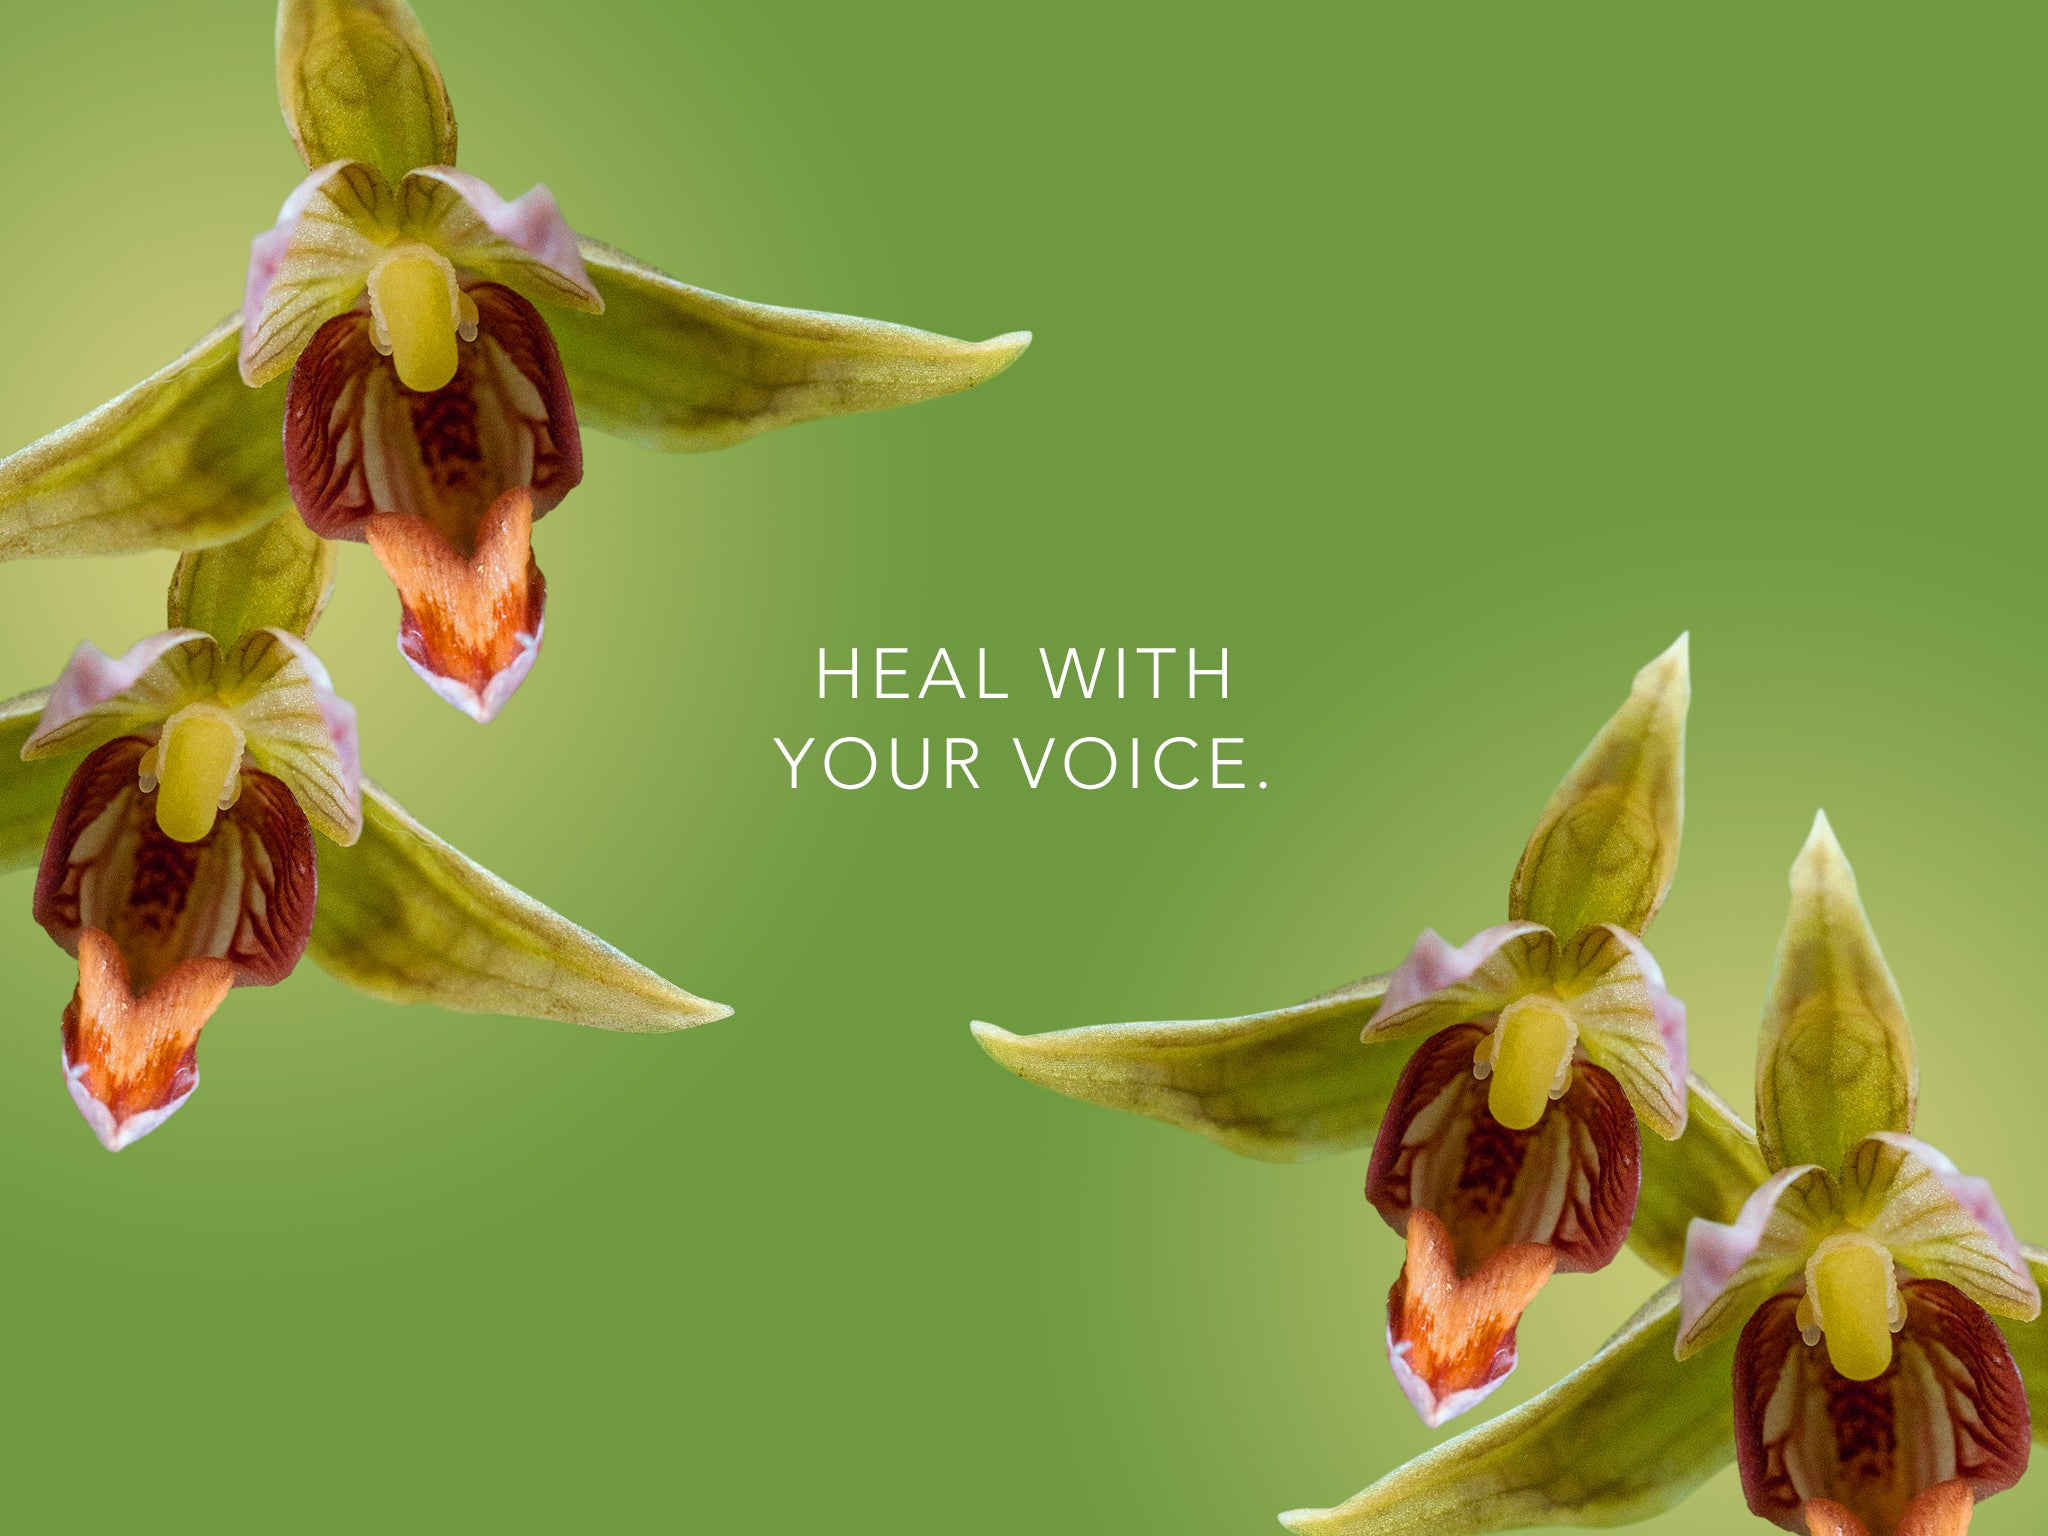 Stream Orchid Wallpaper HEAL WITH YOUR VOICE